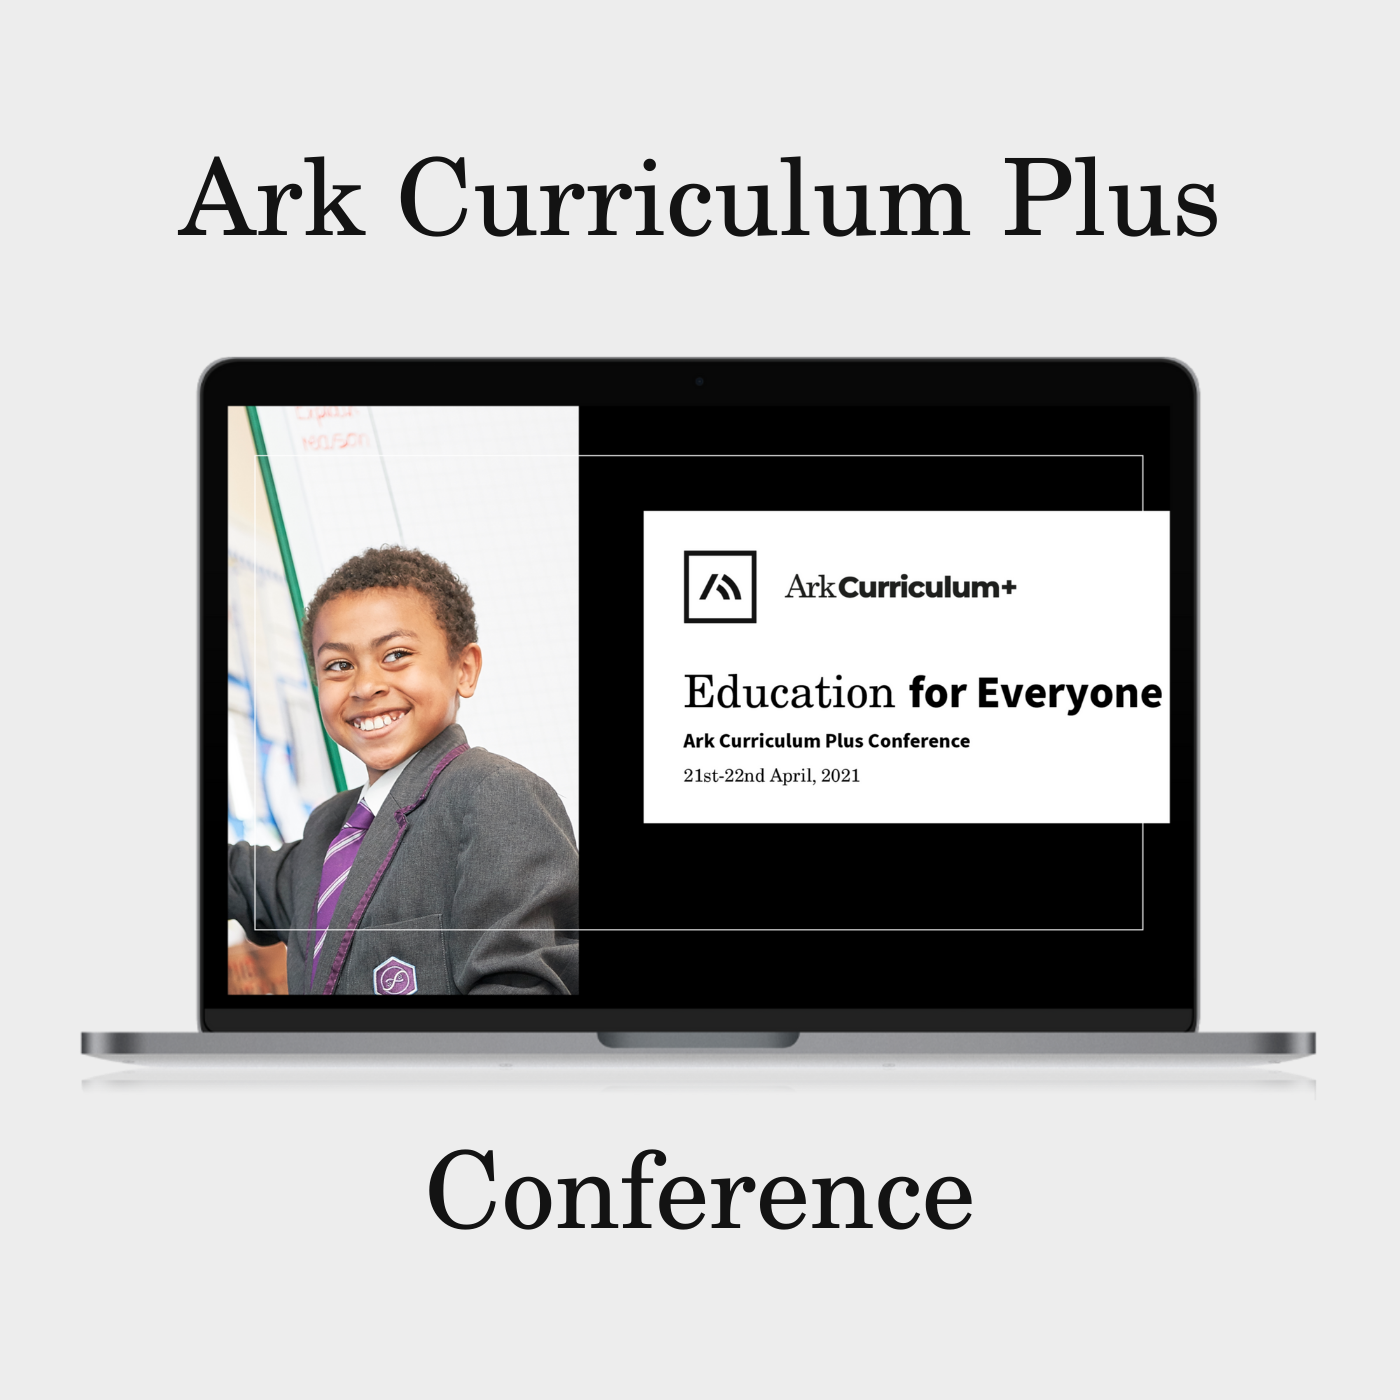 A successful Ark Curriculum Plus conference